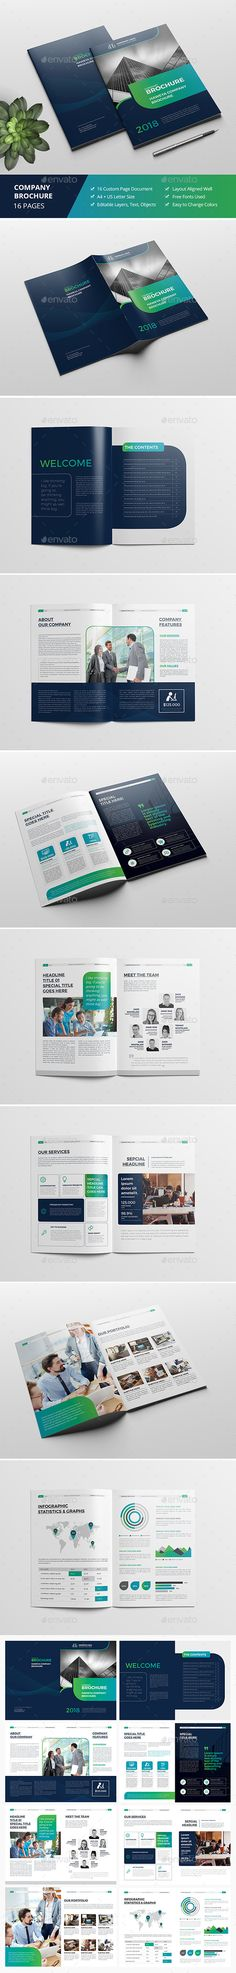 Haweya Company Brochure Template InDesign INDD. Download here: https://graphicriver.net/item/haweya-company-brochure-v02/17310817?ref=ksioks